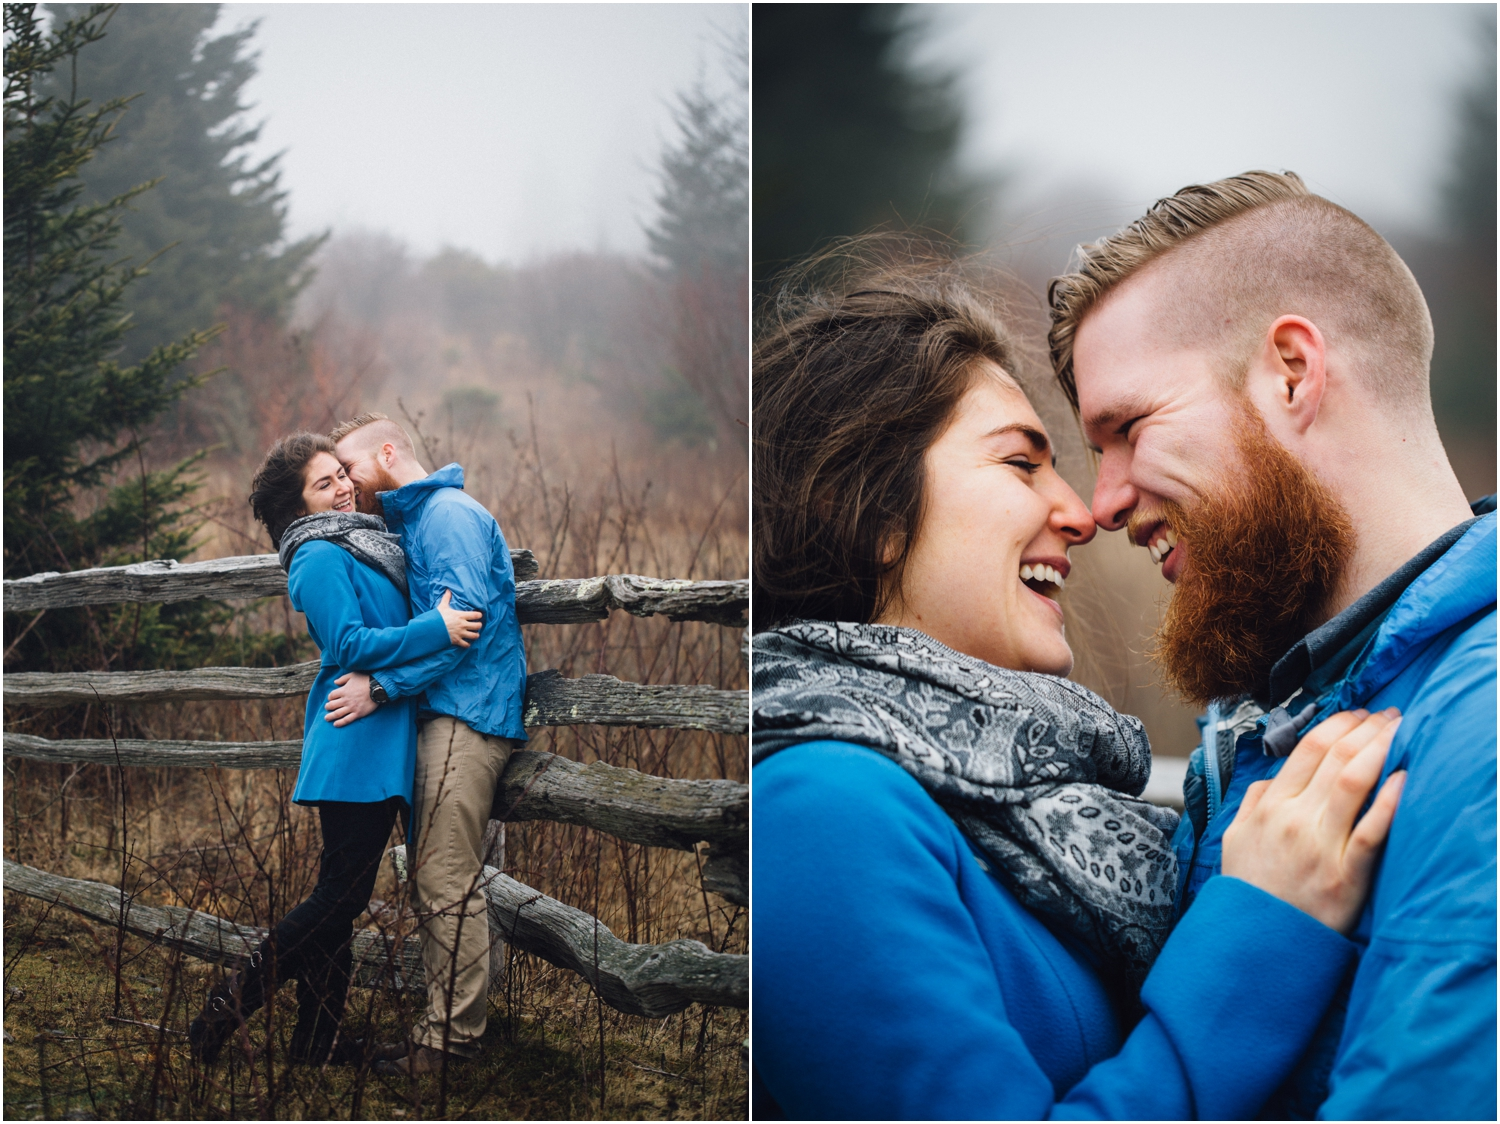 katy-sergent-photography-grayson-highlands-engagement-session-mouth-of-wilson-virginia-damascus-appalachian-trail-tennessee-wedding-elopement_0011.jpg